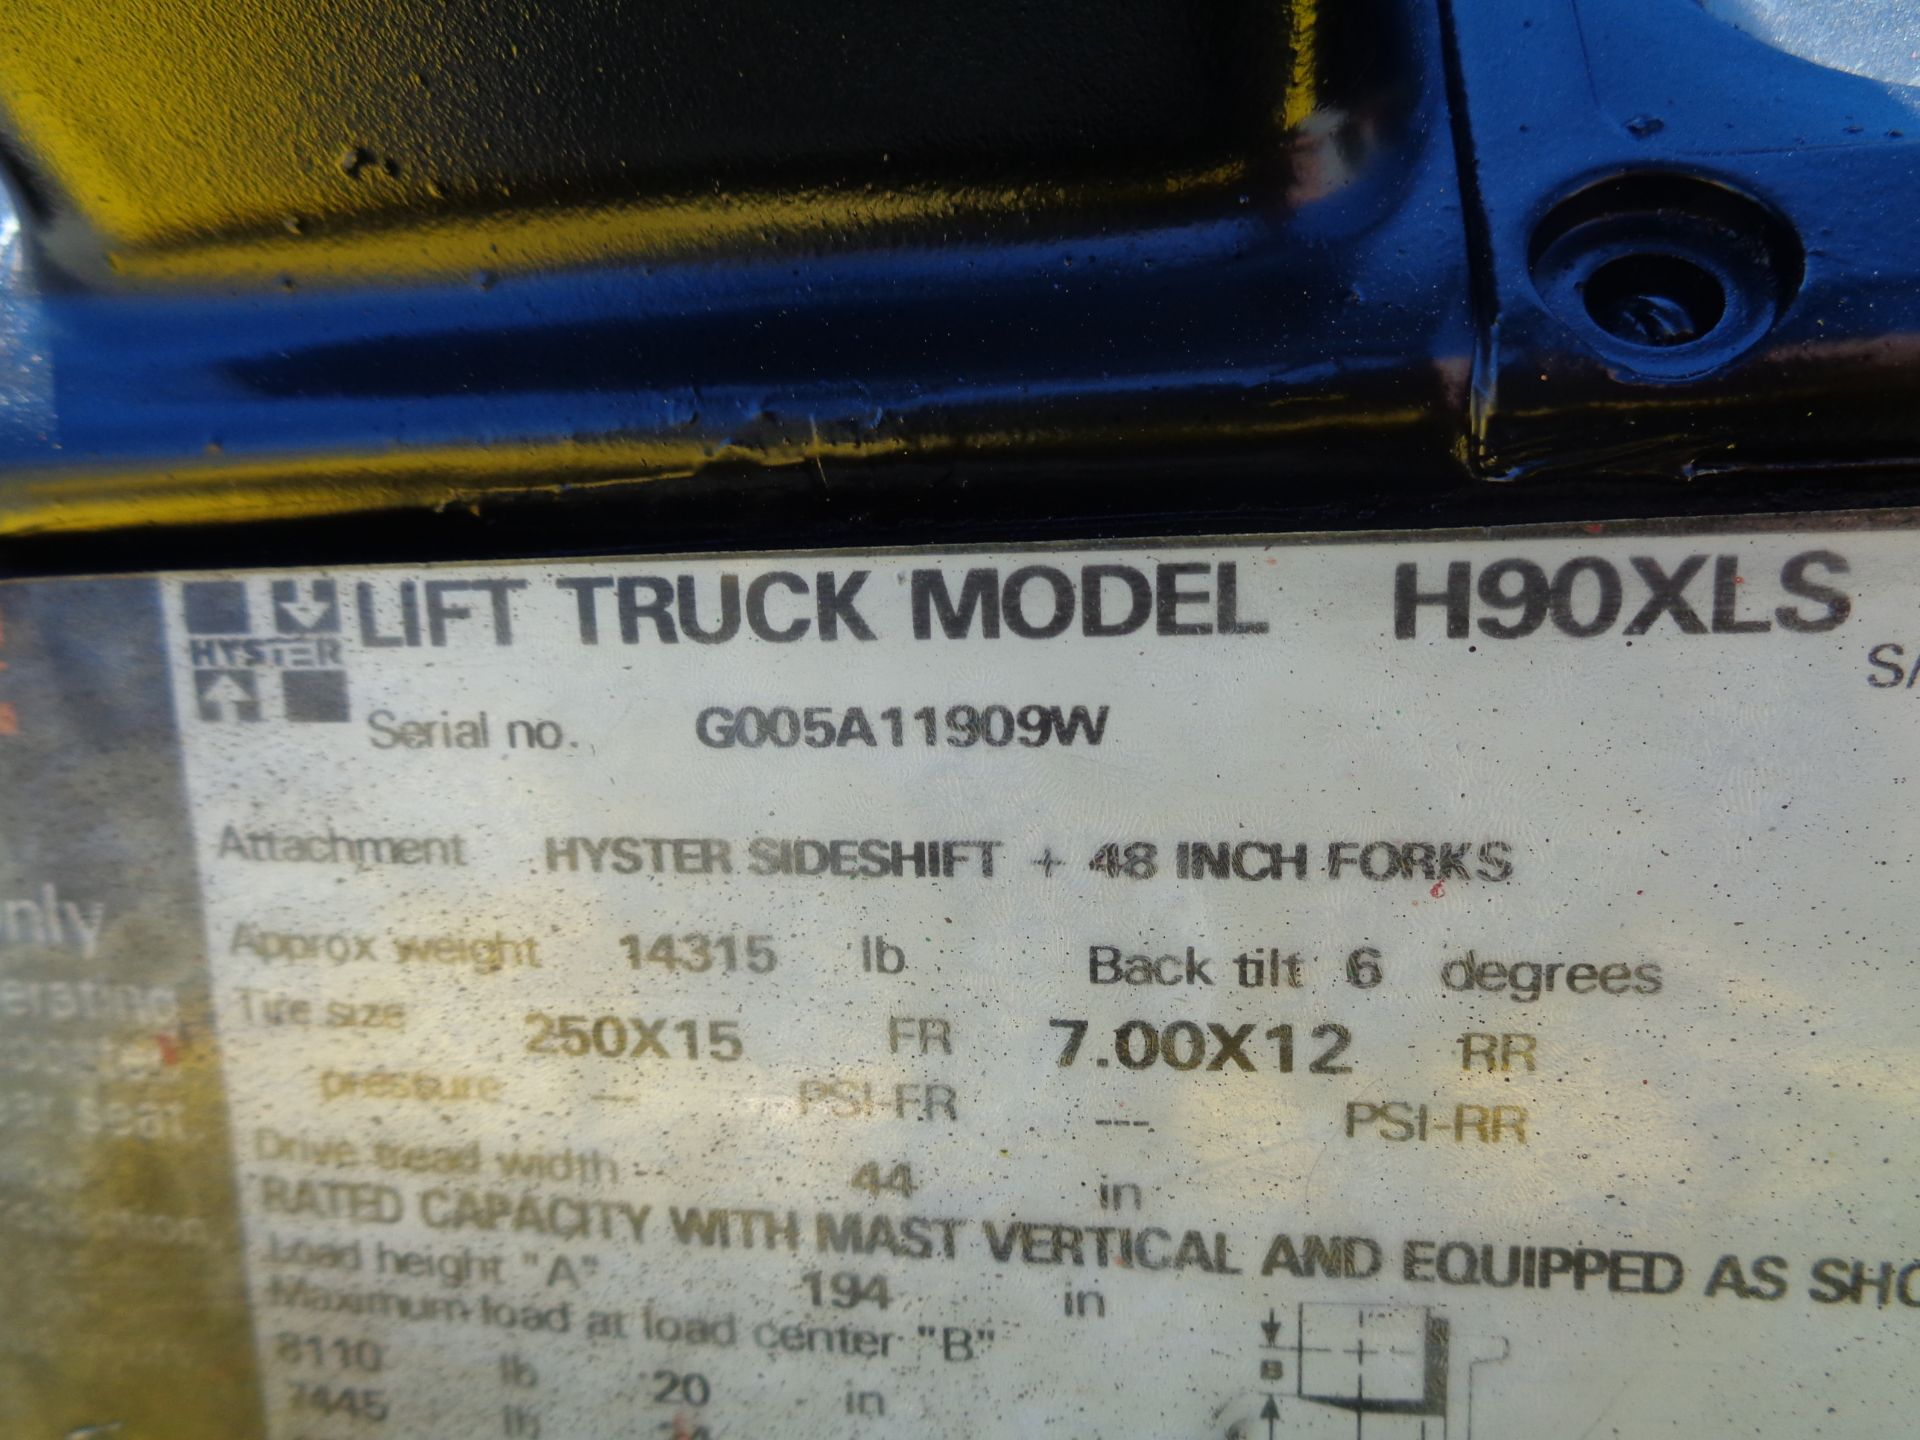 Hyster H90XLS Forklift 9,000 lbs - Image 6 of 13